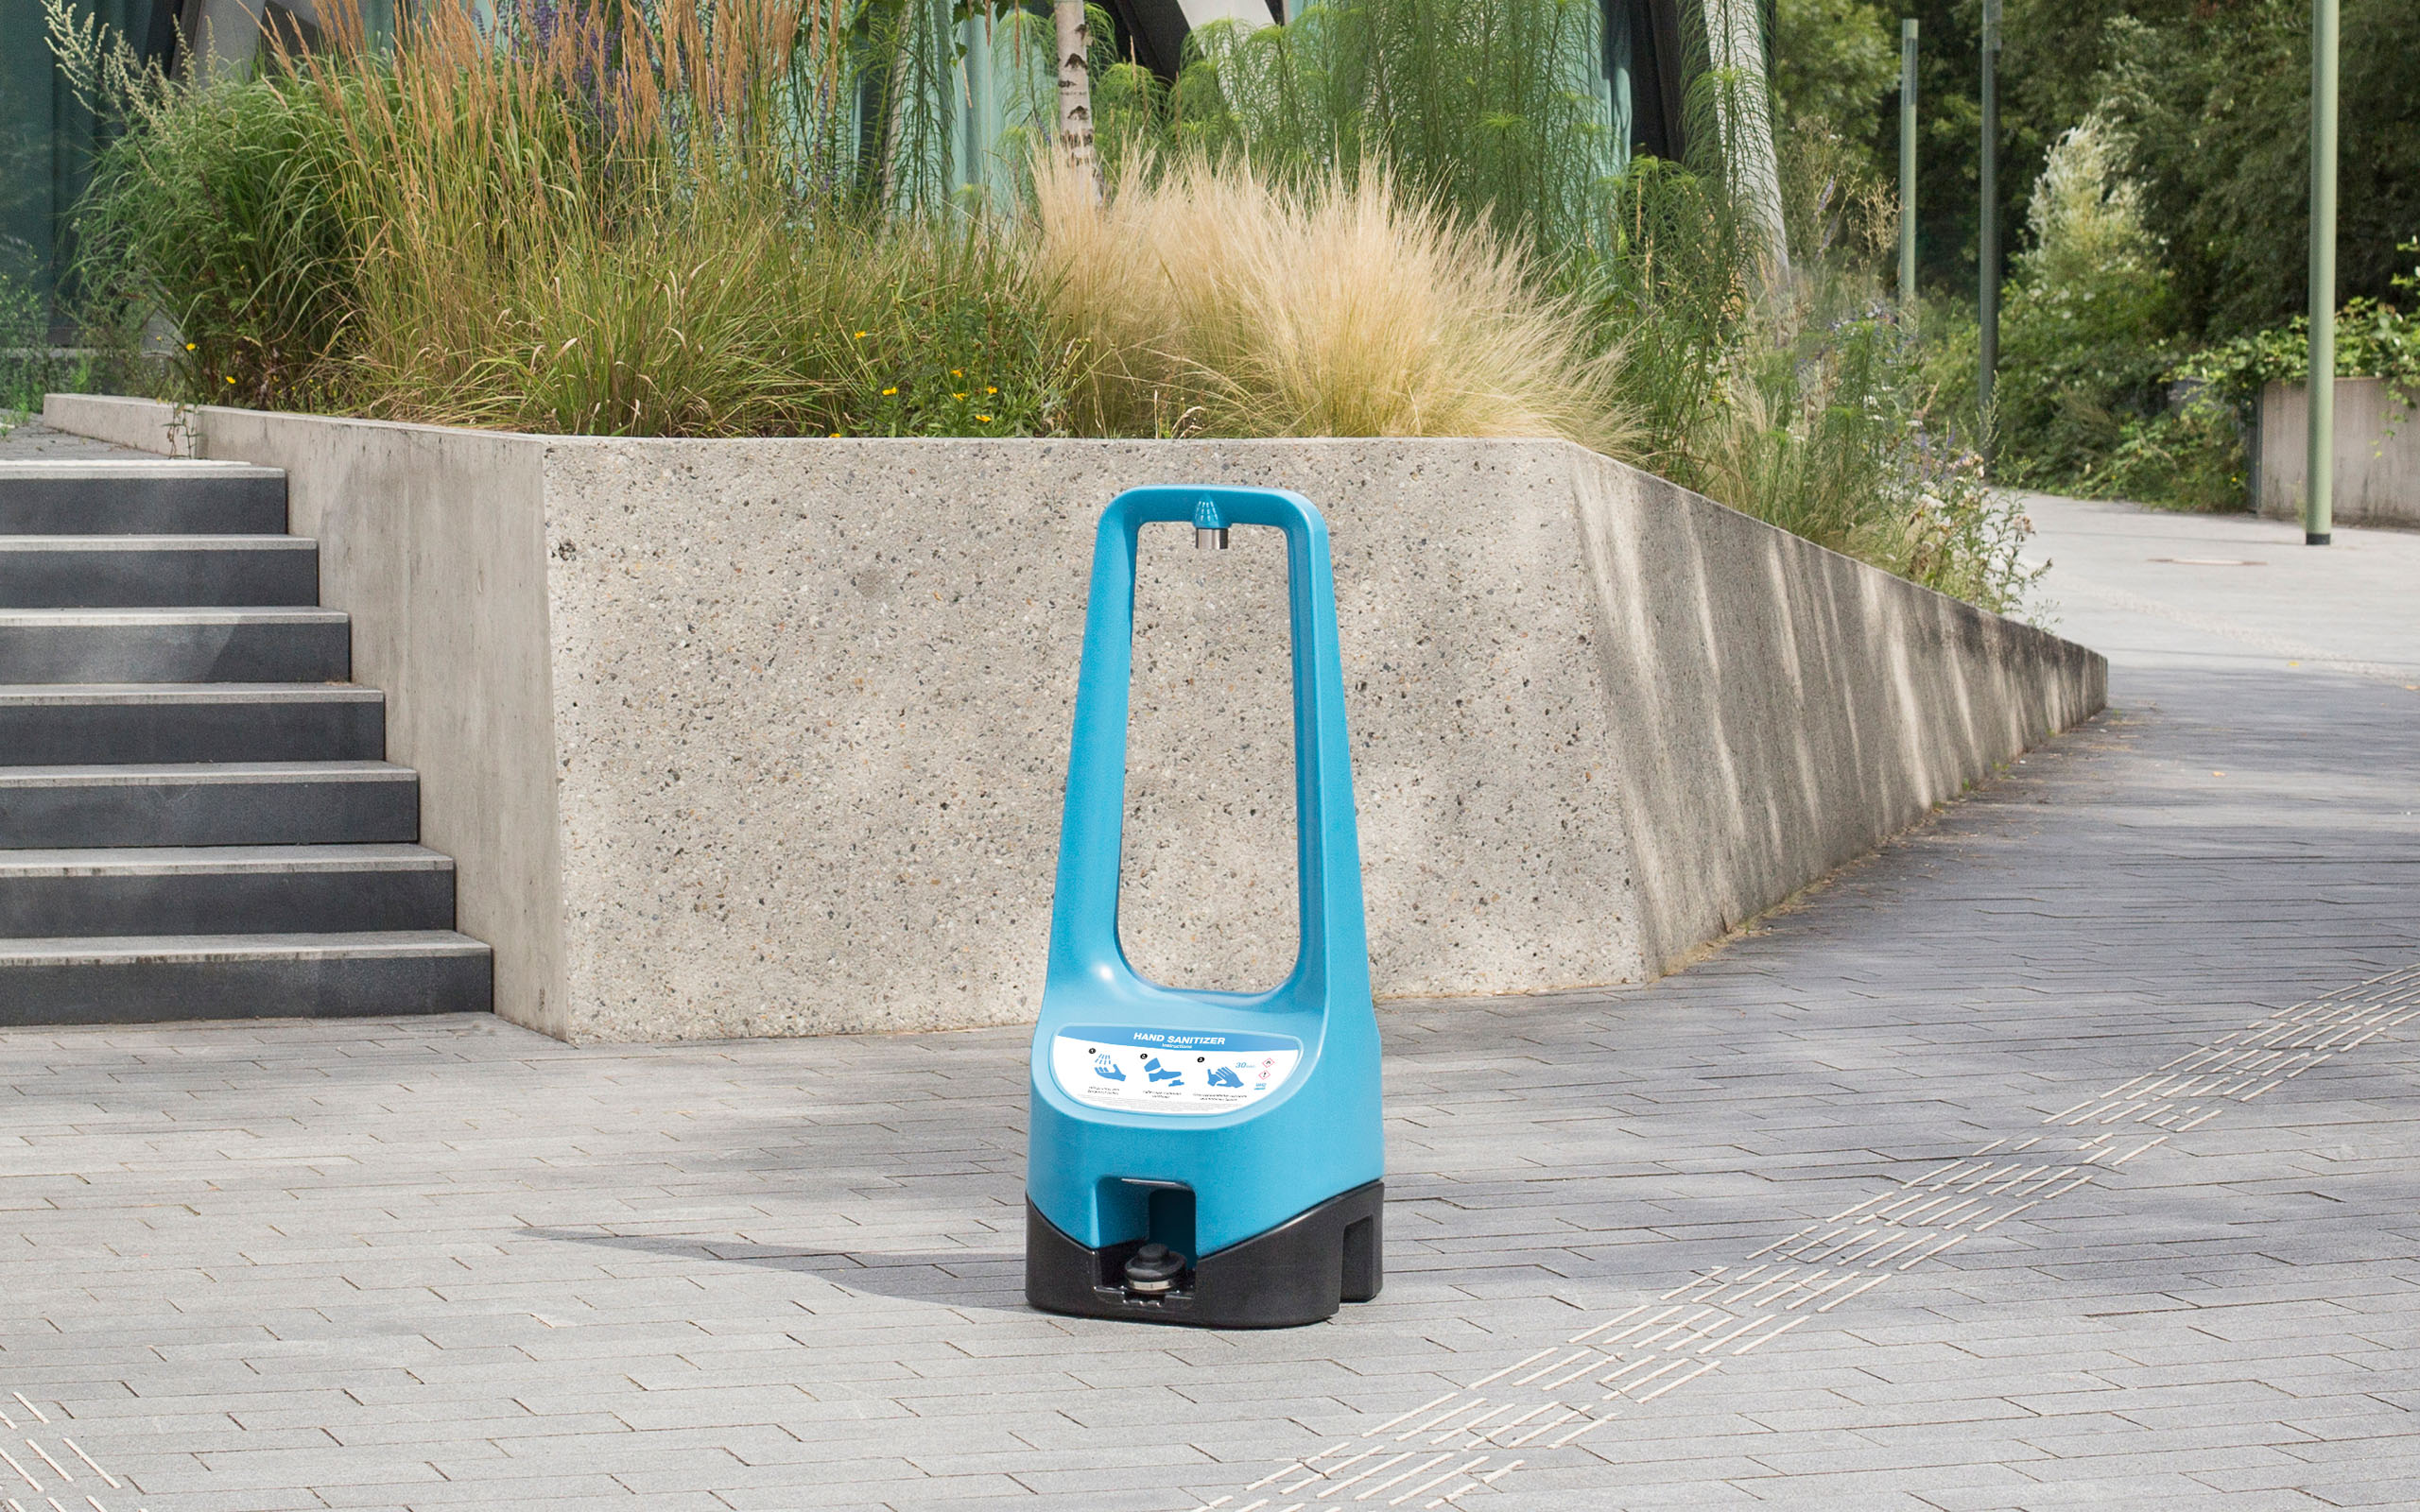 A Toi Care blue hand sanitizer with a foot pump for handling standing outdoors.